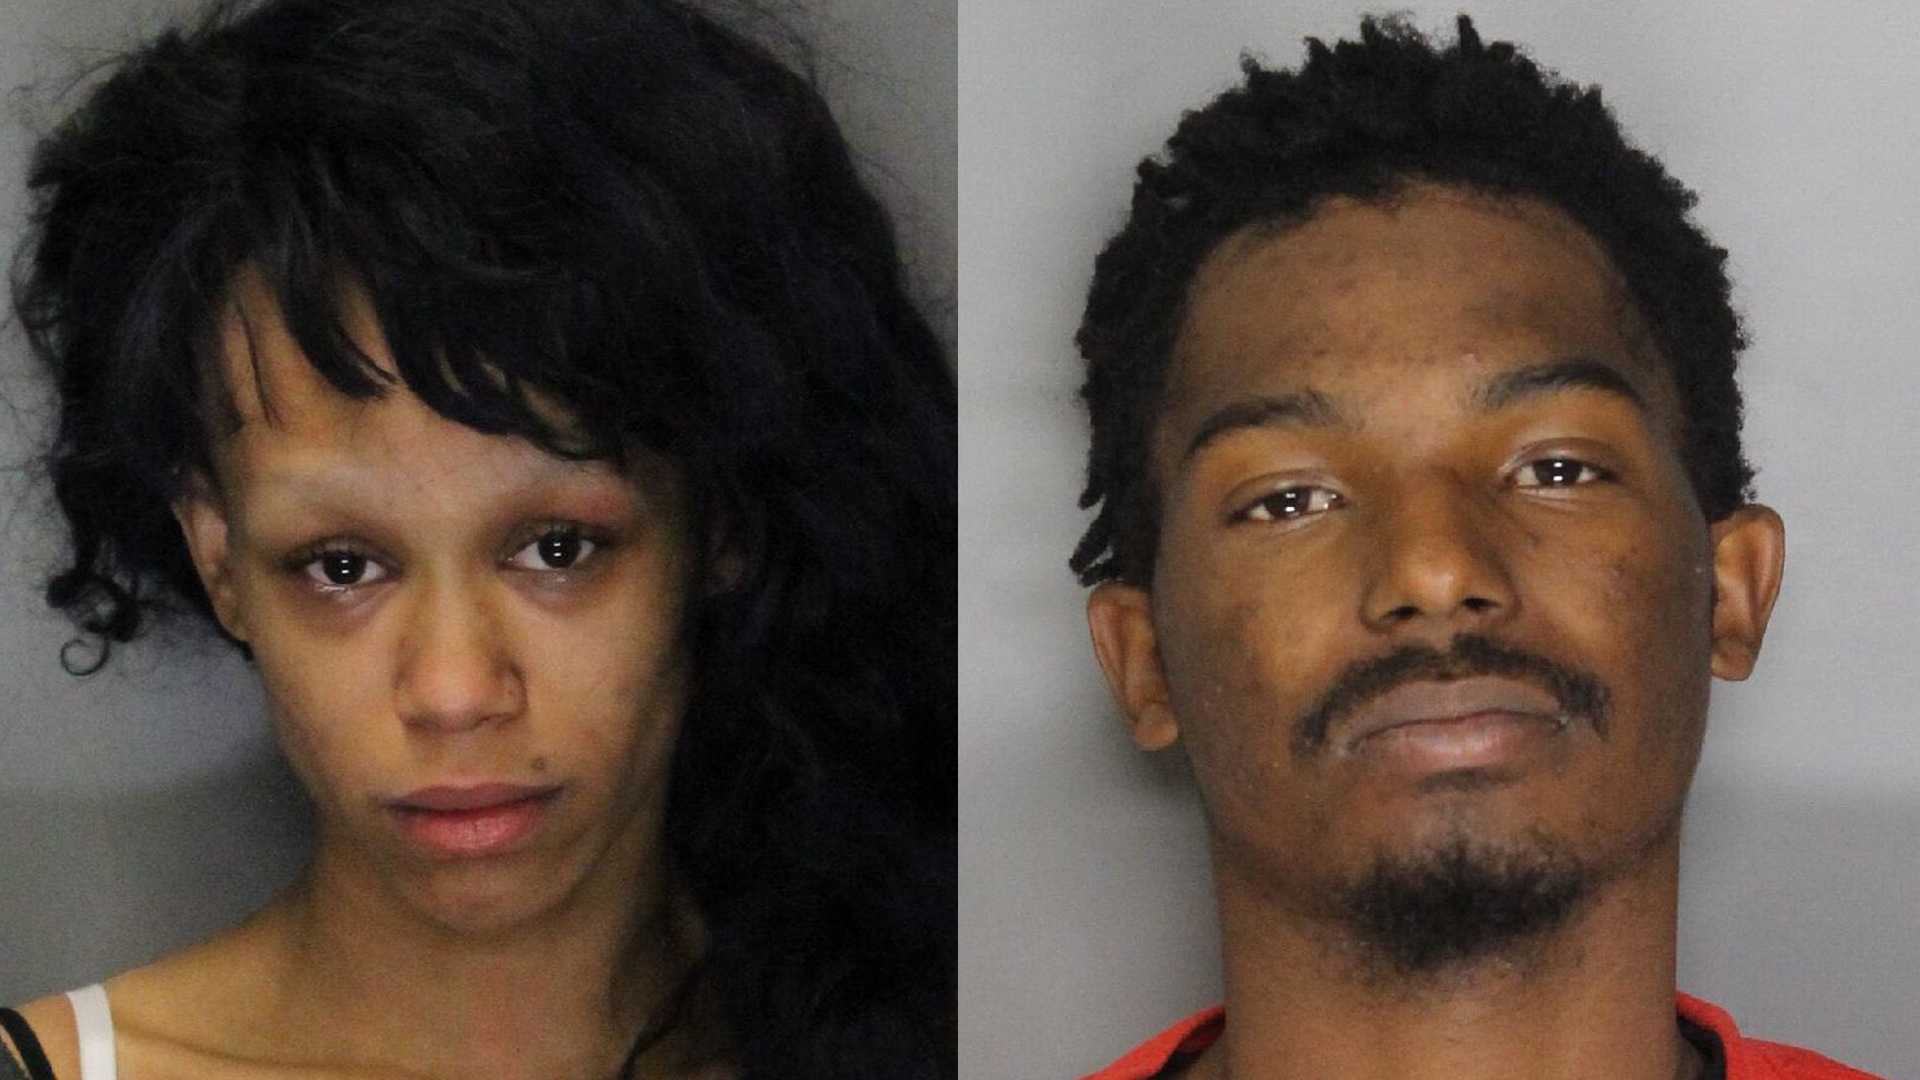 Kayla Randall, 19, (left) and Keiyonte Davis, 20, (right) were arrested in connection to sex trafficking a girl, the Citrus Heights Police Department said.